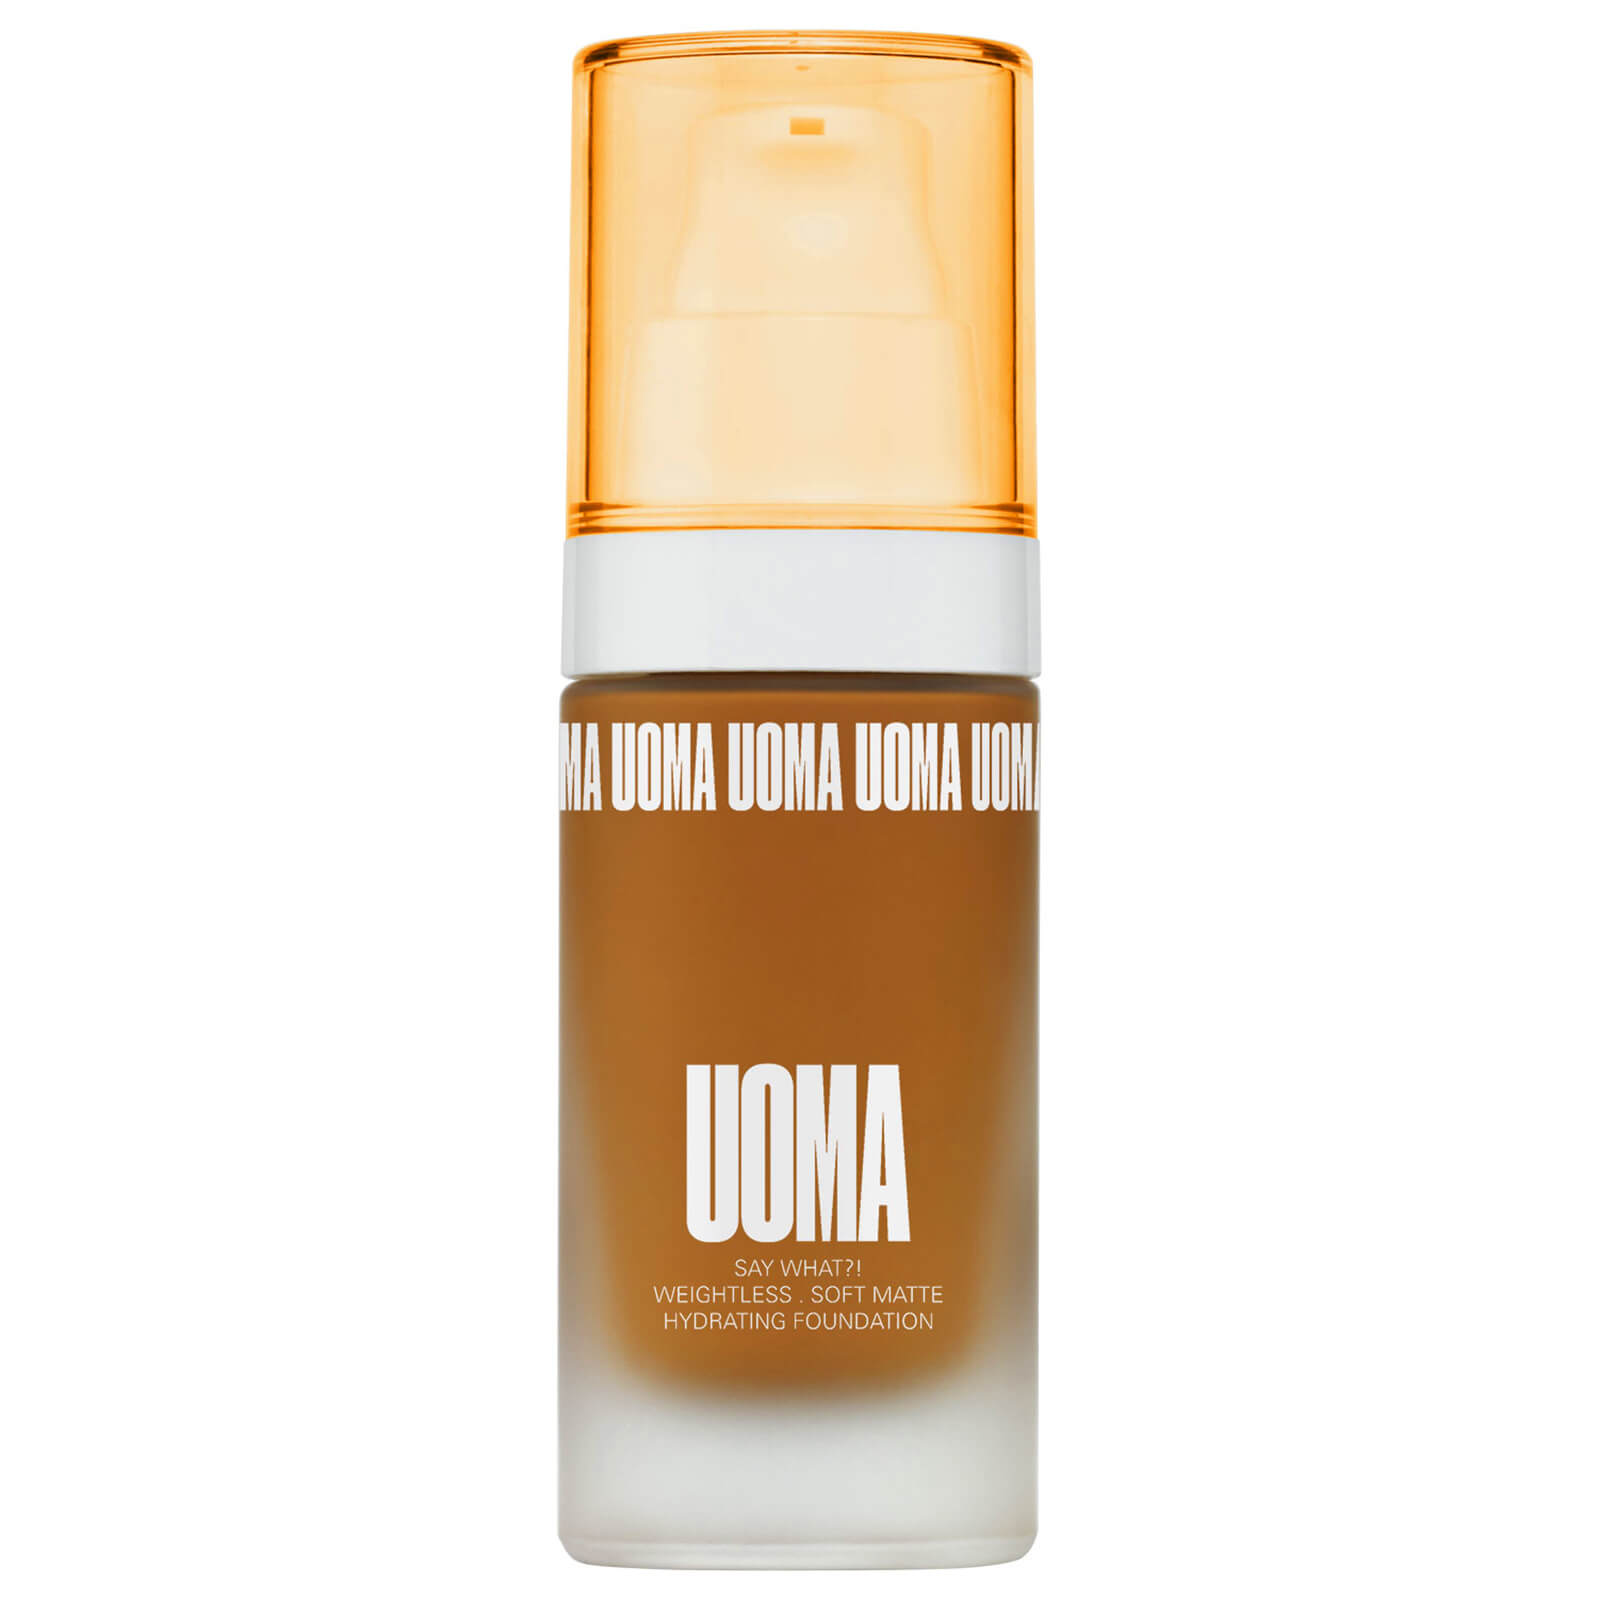 UOMA Beauty Say What Foundation 30ml (Various Shades) - Brown Sugar T2W